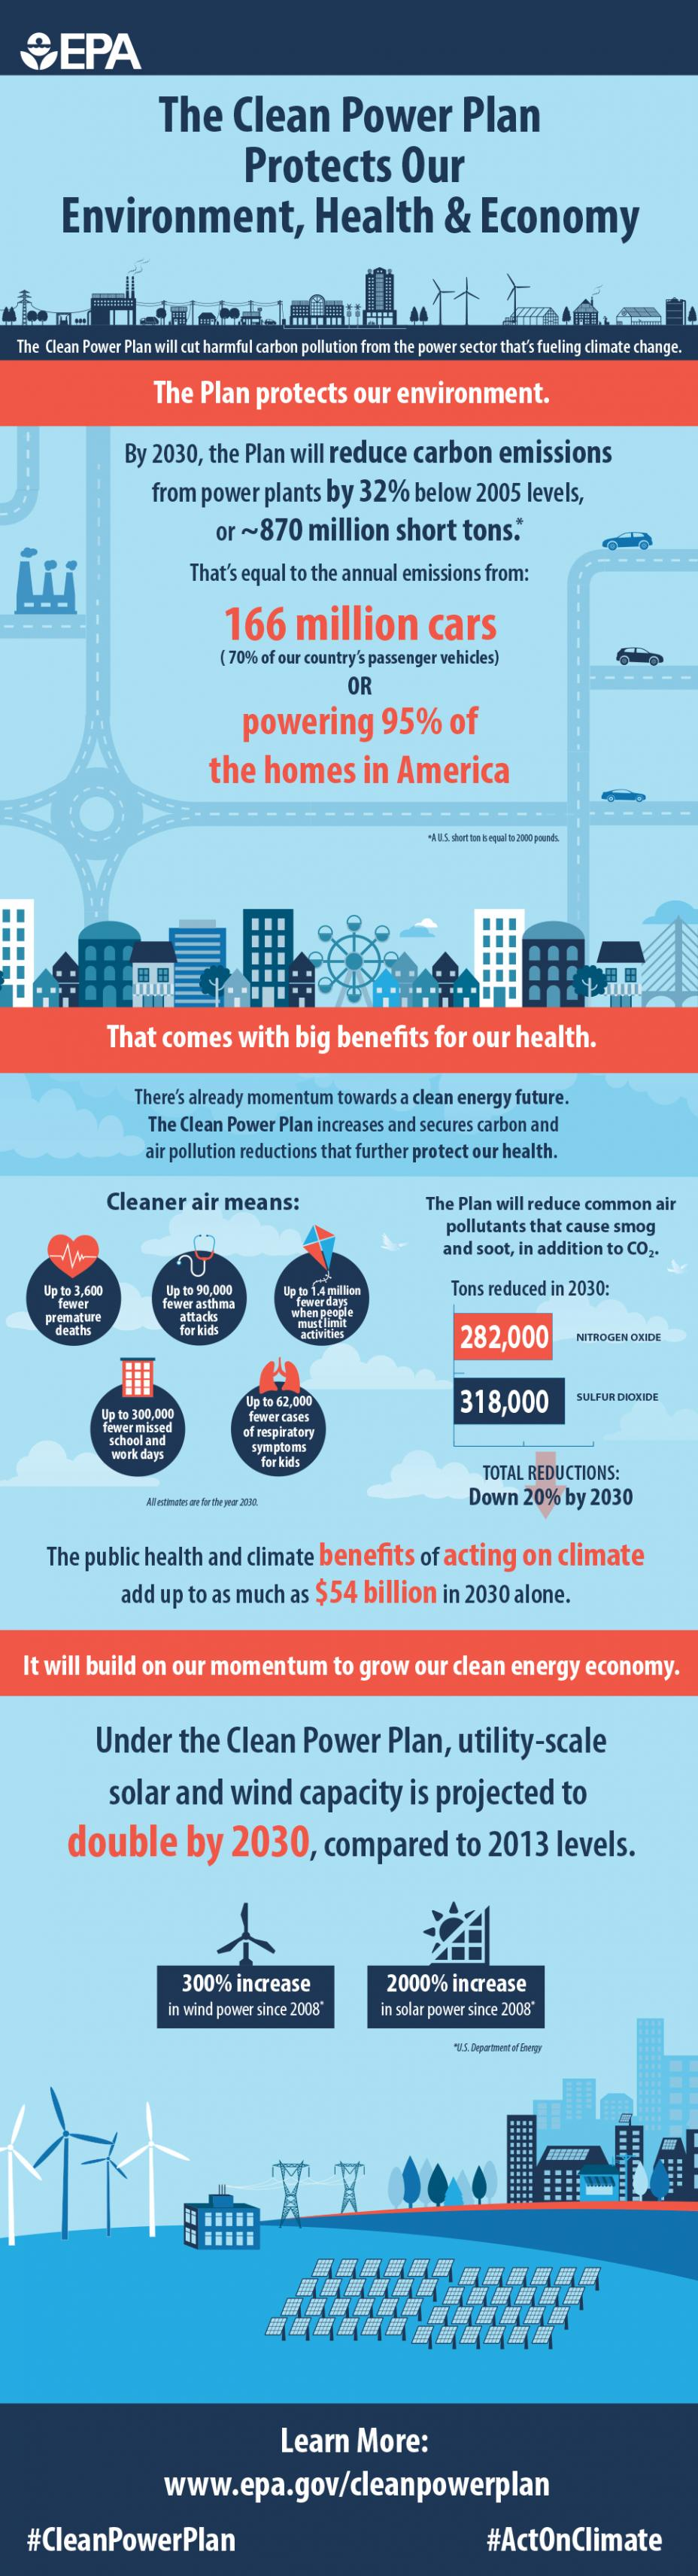 Clean Power Plan benefits